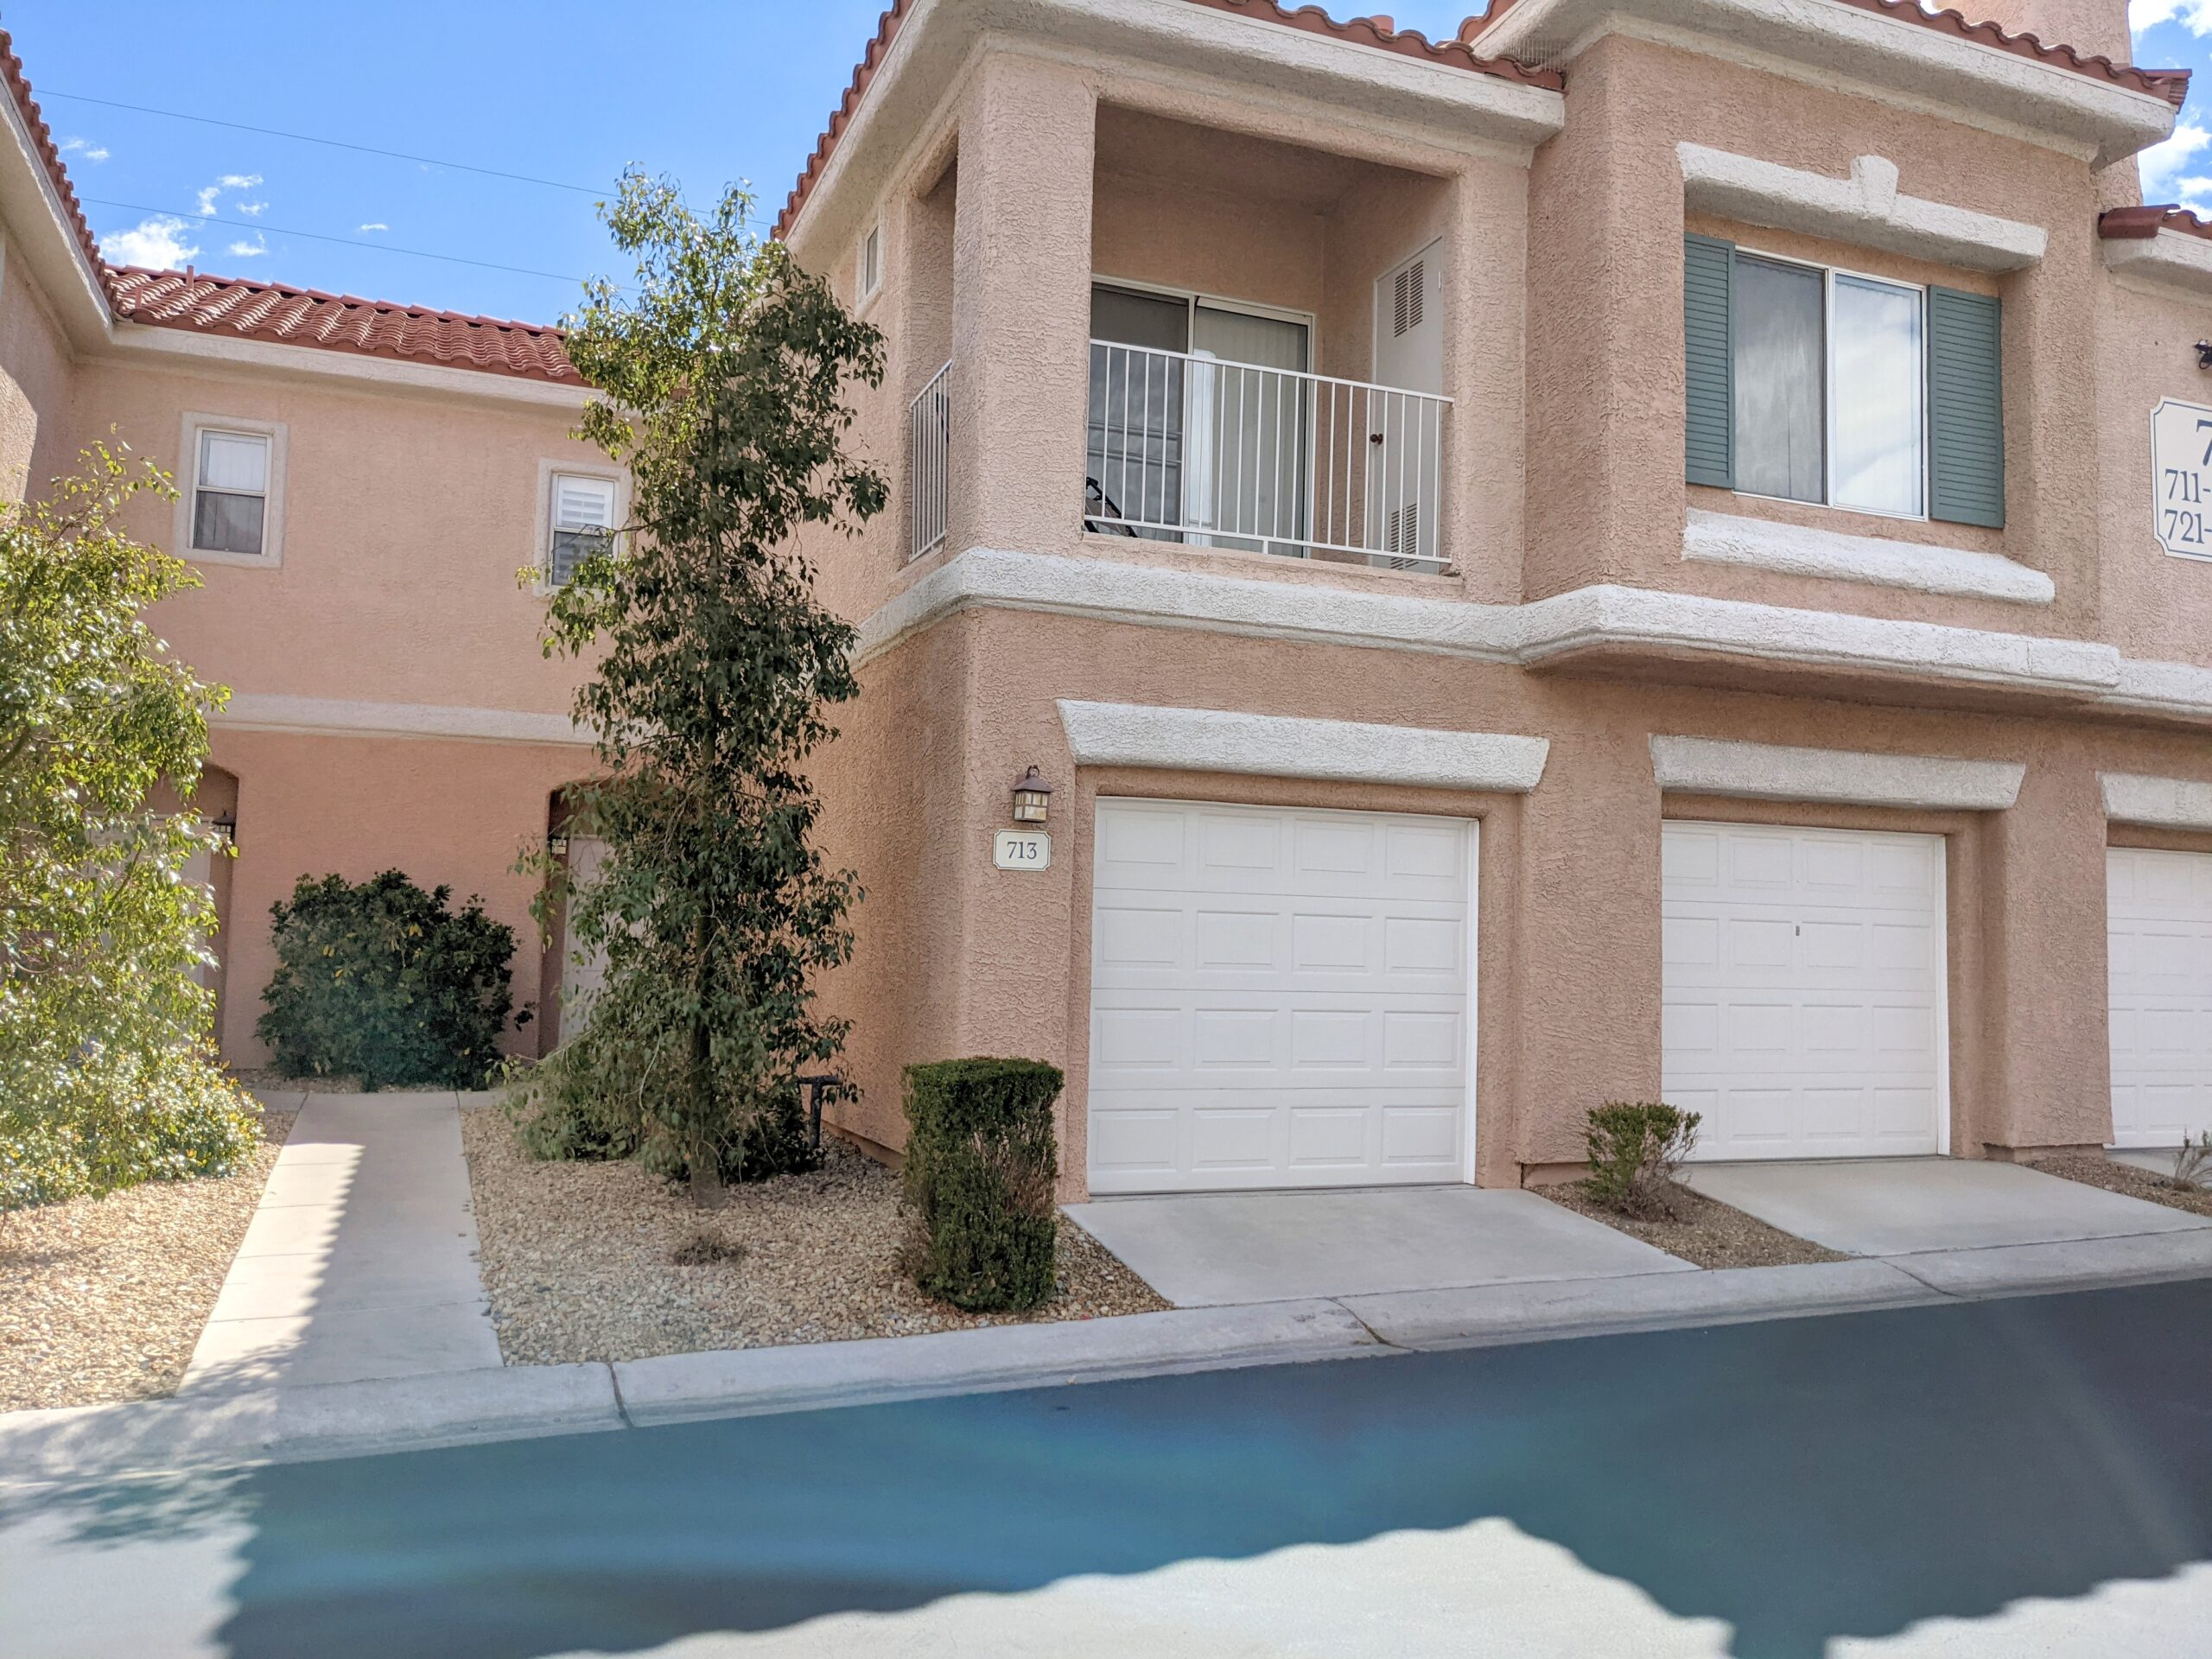 251 S Green Valley Parkway Unit # 713 , Henderson NV 89012